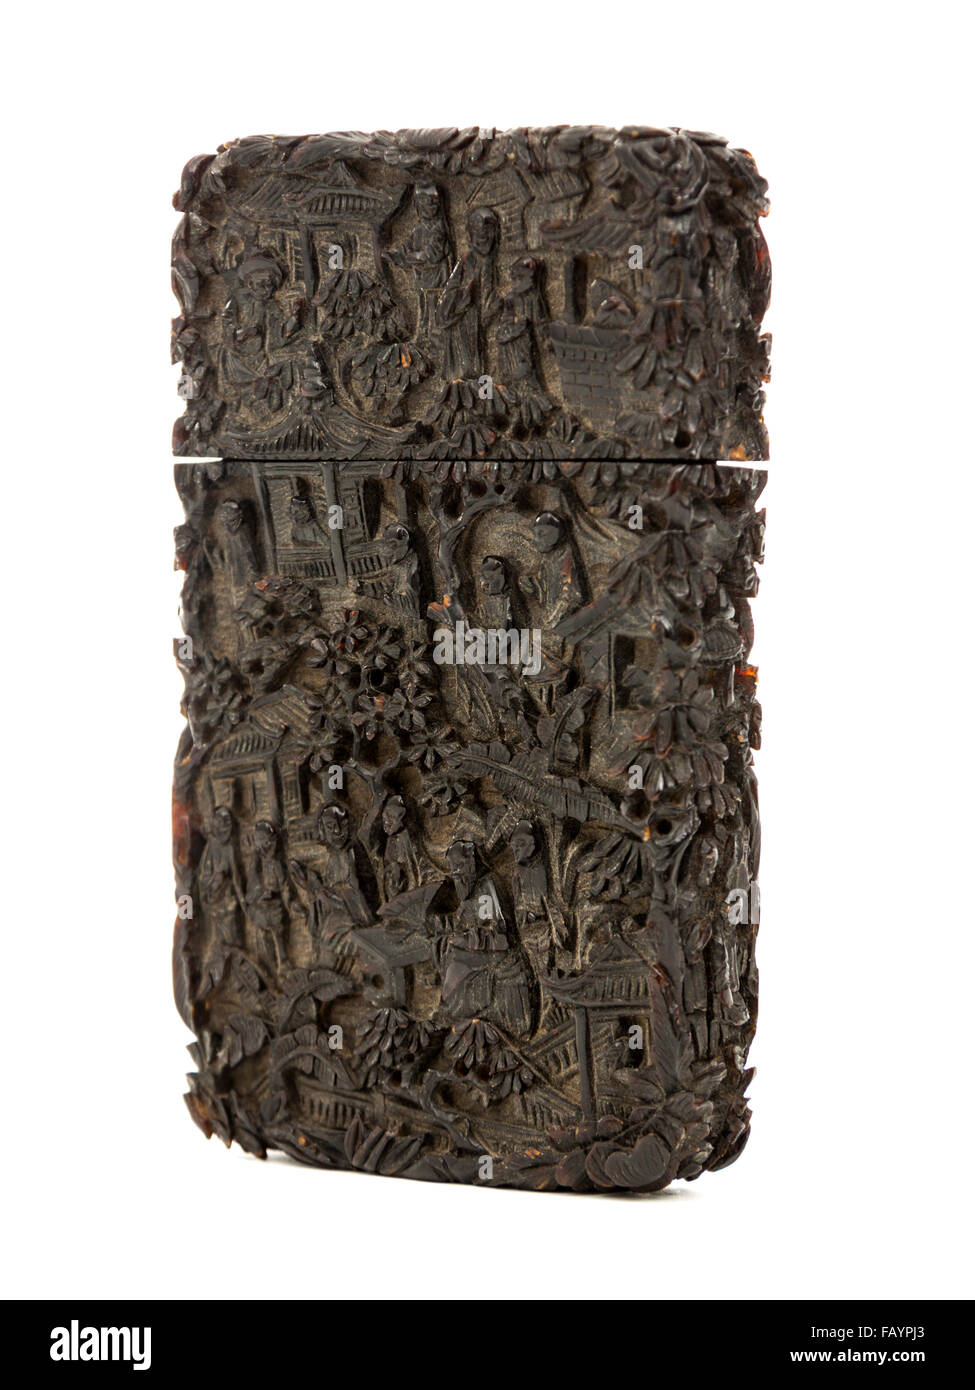 Antique 19th century Chinese or Japanese finely carved tortoise shell case for storing 'calling' or 'visiting' - Stock Image